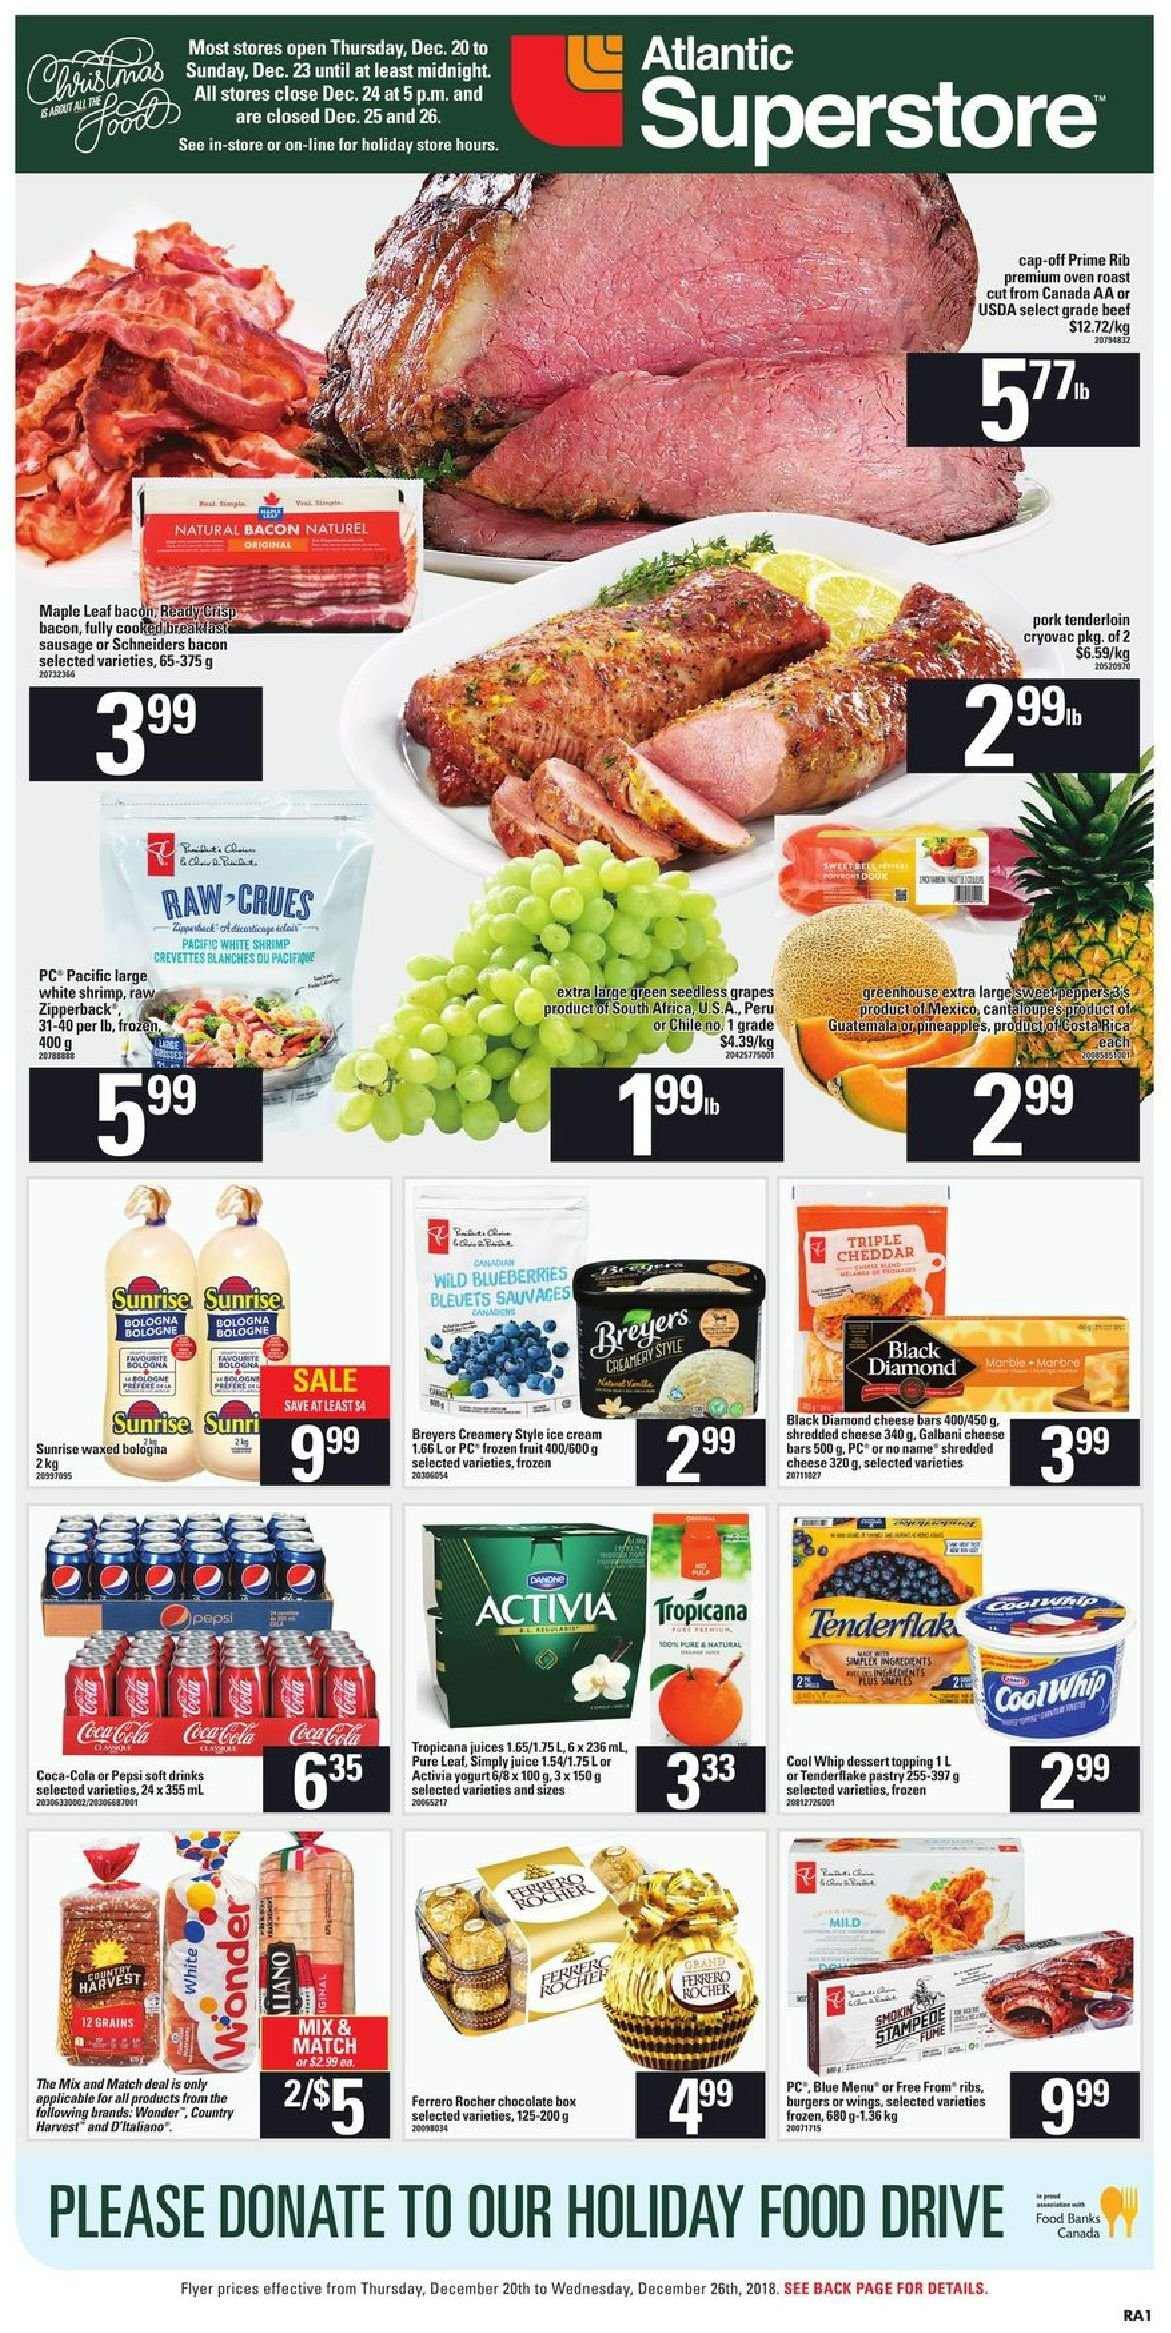 Atlantic Superstore Flyer - December 20, 2018 - December 26, 2018 - Sales products - bacon, beef meat, blueberries, cantaloupe, cap, coca cola, cool whip, cream, frozen, grapes, shredded cheese, shrimp, ice cream, pork meat, pork tenderloin, cheddar, pepsi, oven, chocolate, tenderloin, cheese, juice, dessert, ribs, activia, crevette, tropicana, fruits. Page 1.